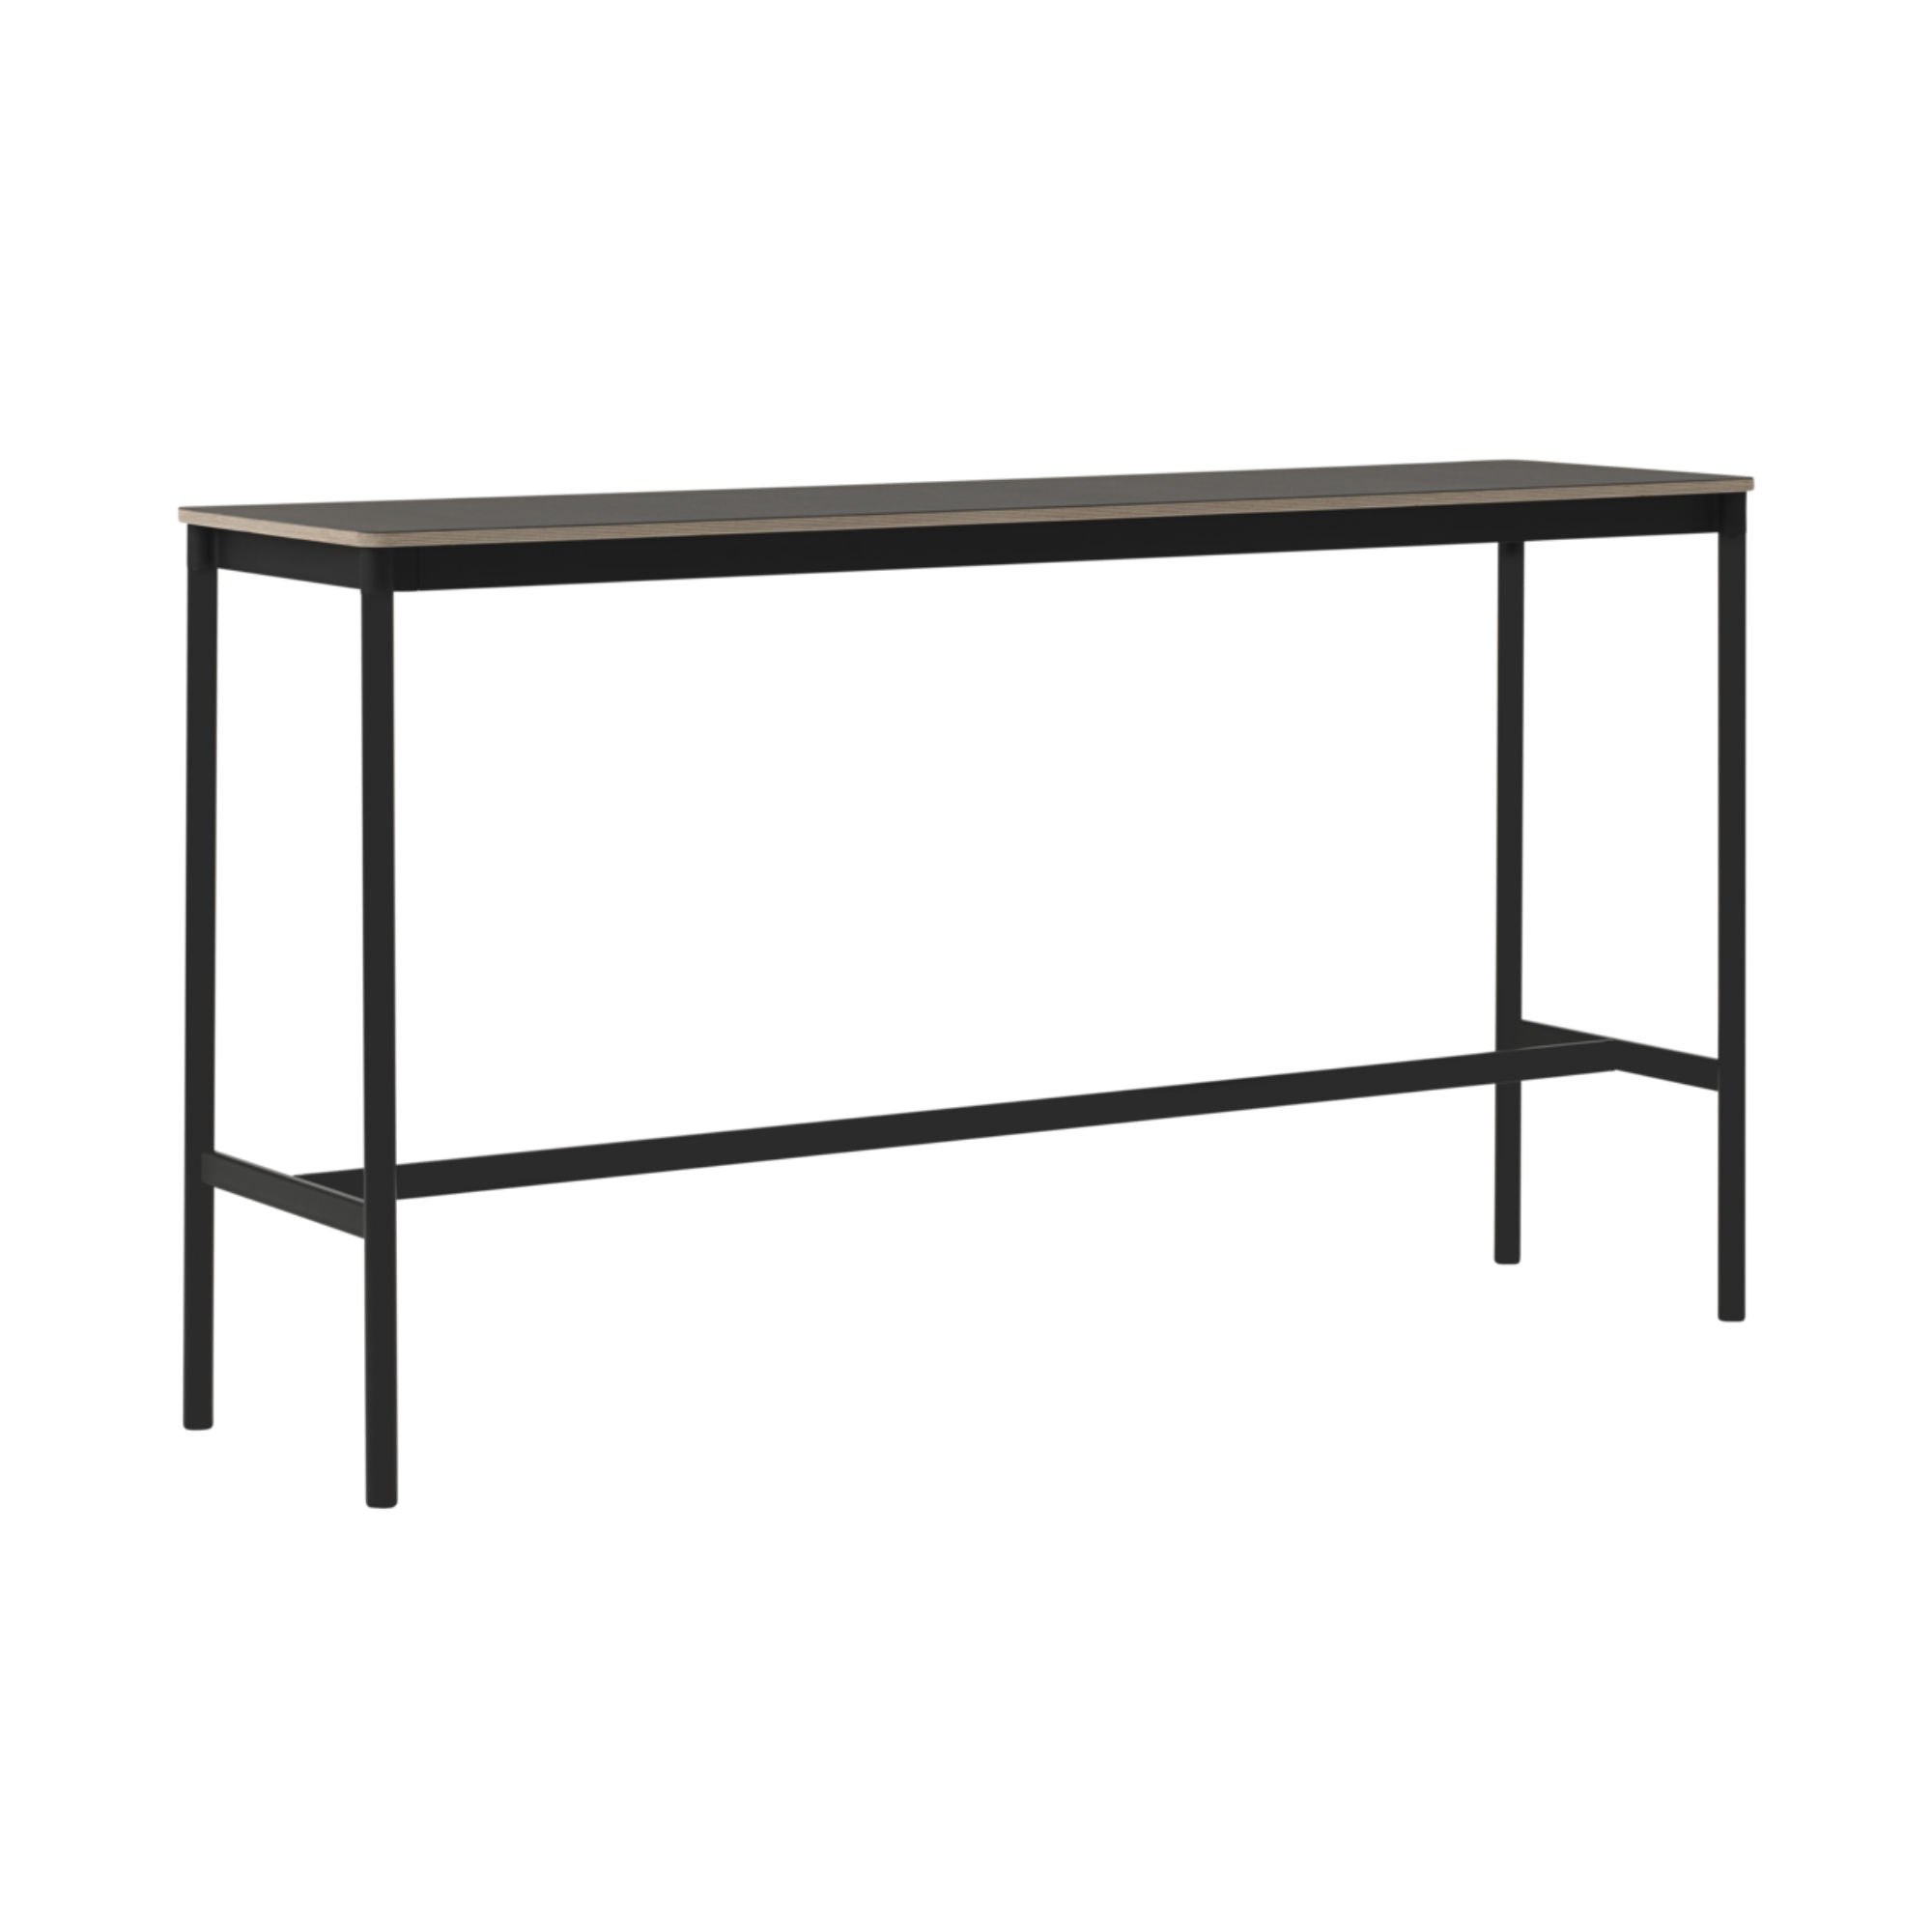 Muuto Base High Table 190x50 h:105cm , Black Linoleum/Plywood/Black